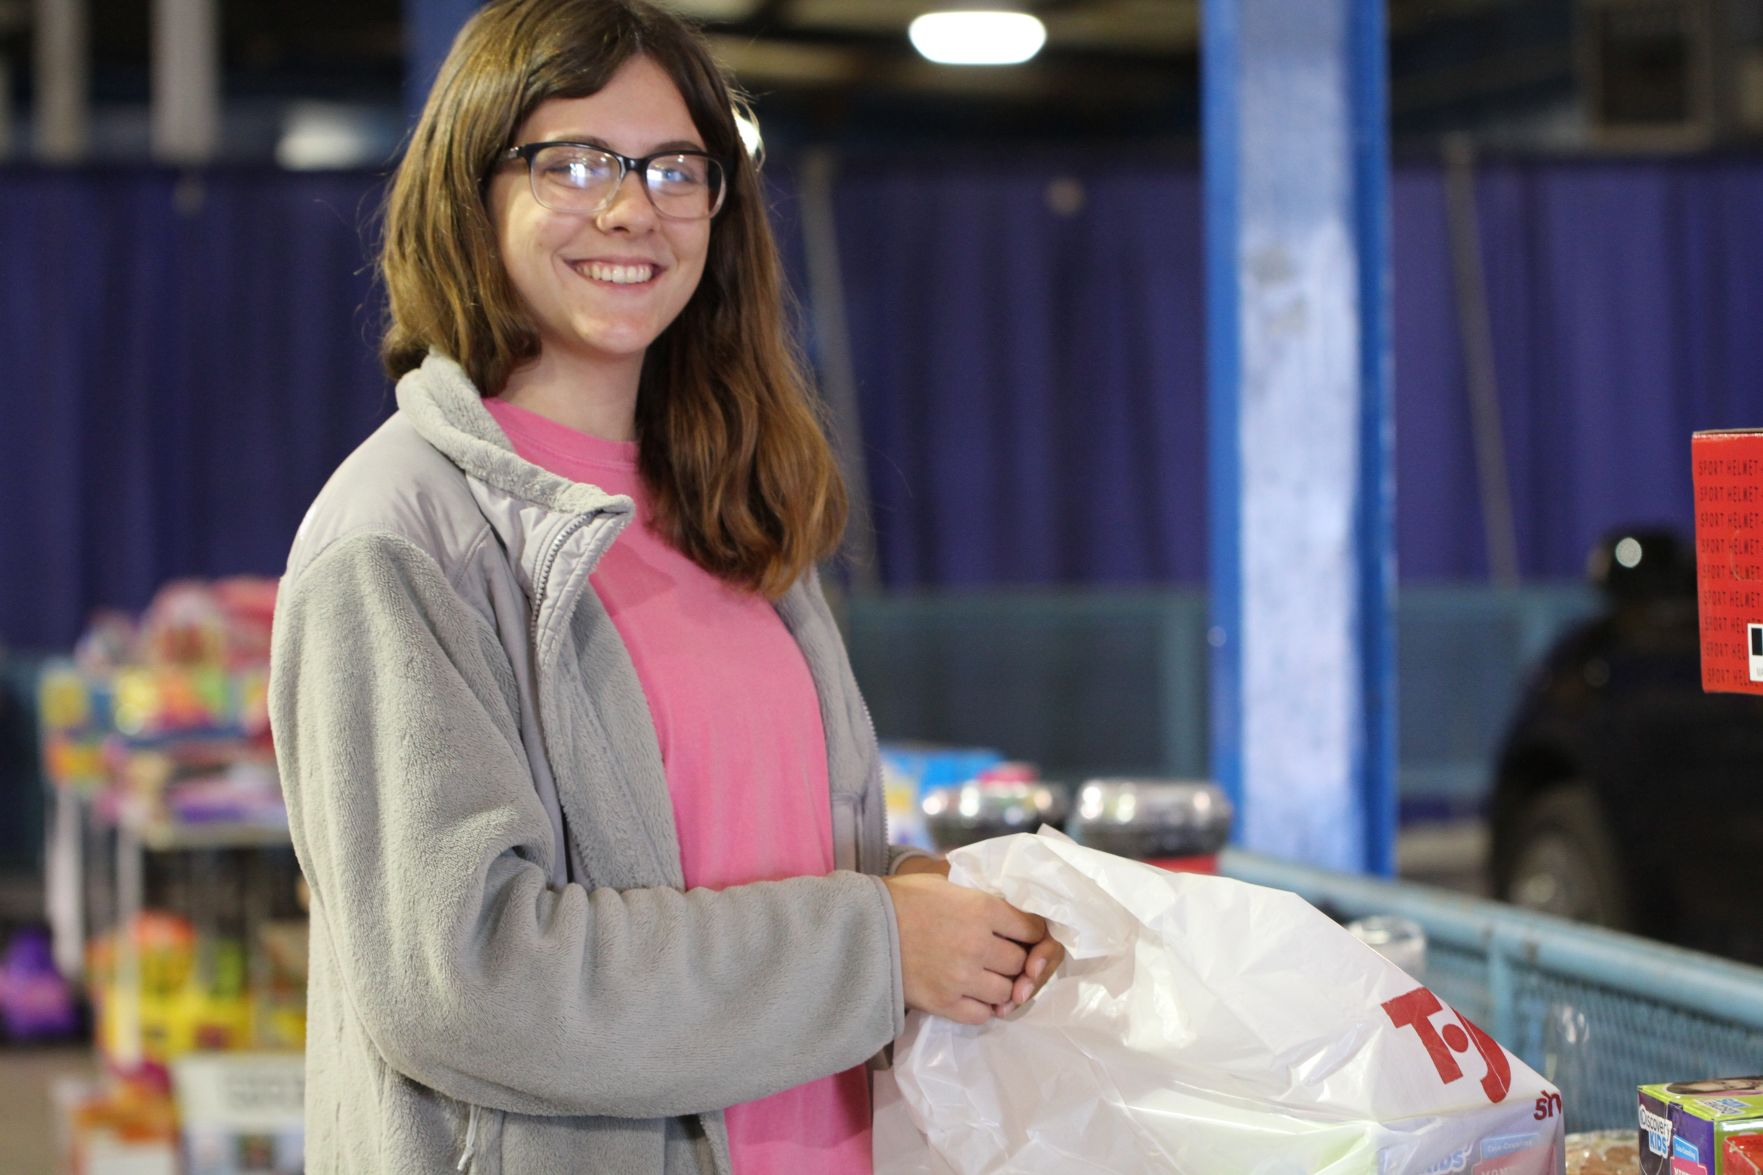 Las Vegas Toys For Tots : Toys for tots volunteers prepare for pickup news tiftongazette